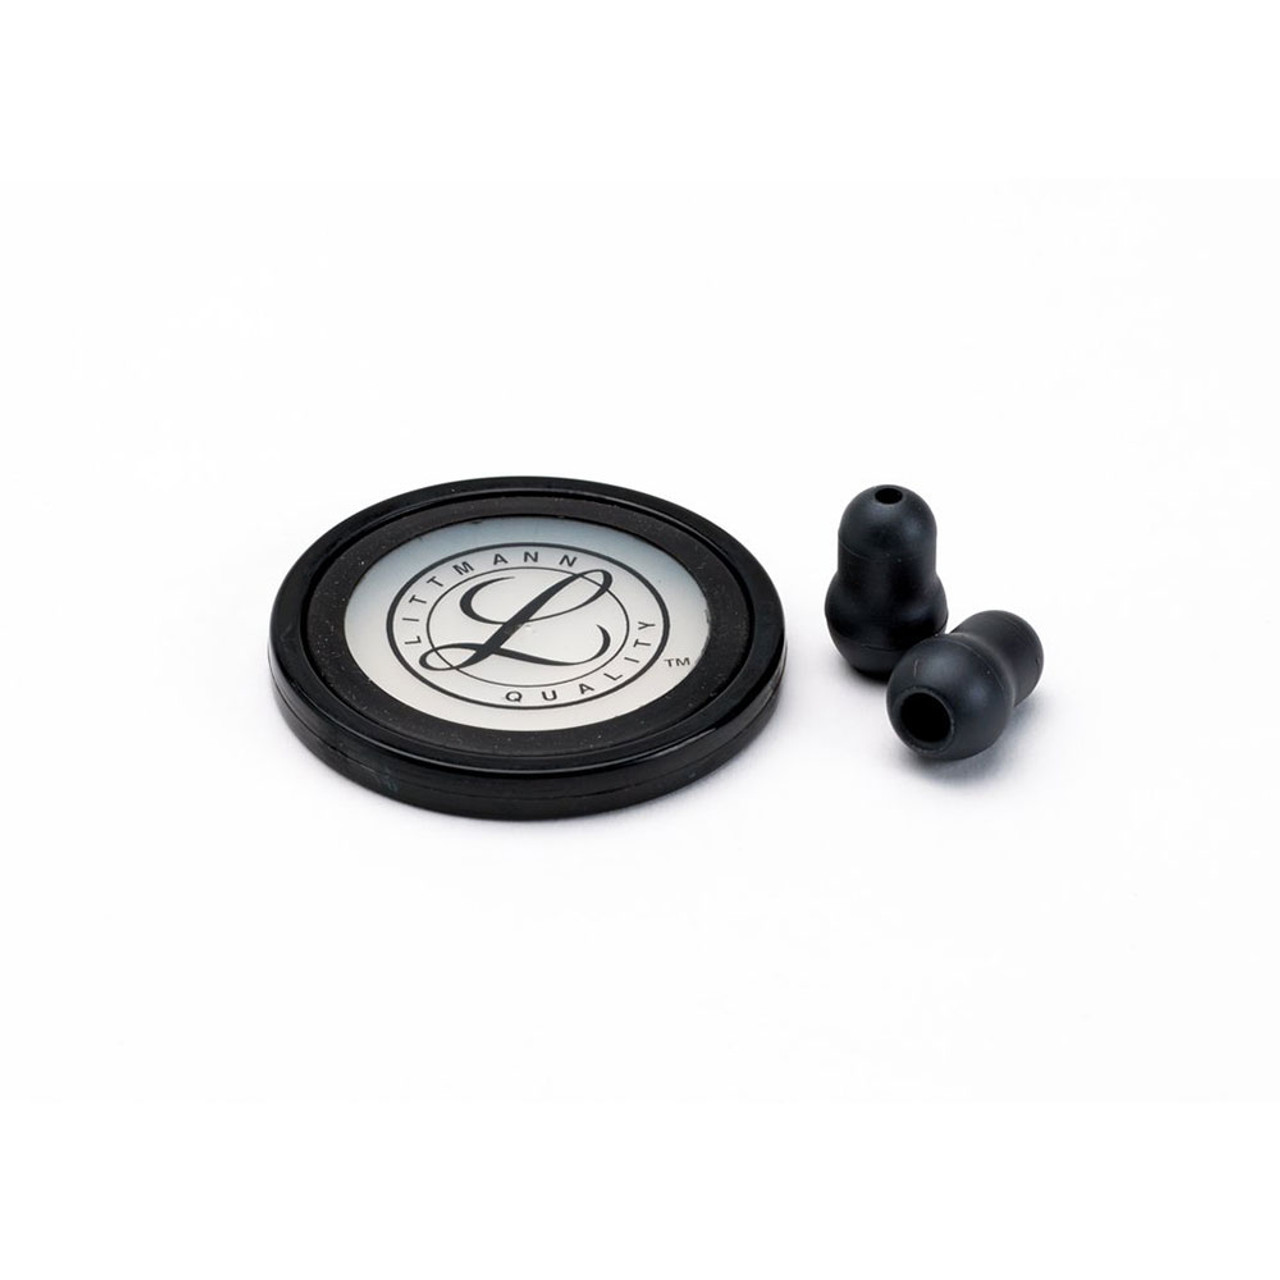 Littmann Stethoscope Spare Parts Kit, Master Cardiology, Black, 40011